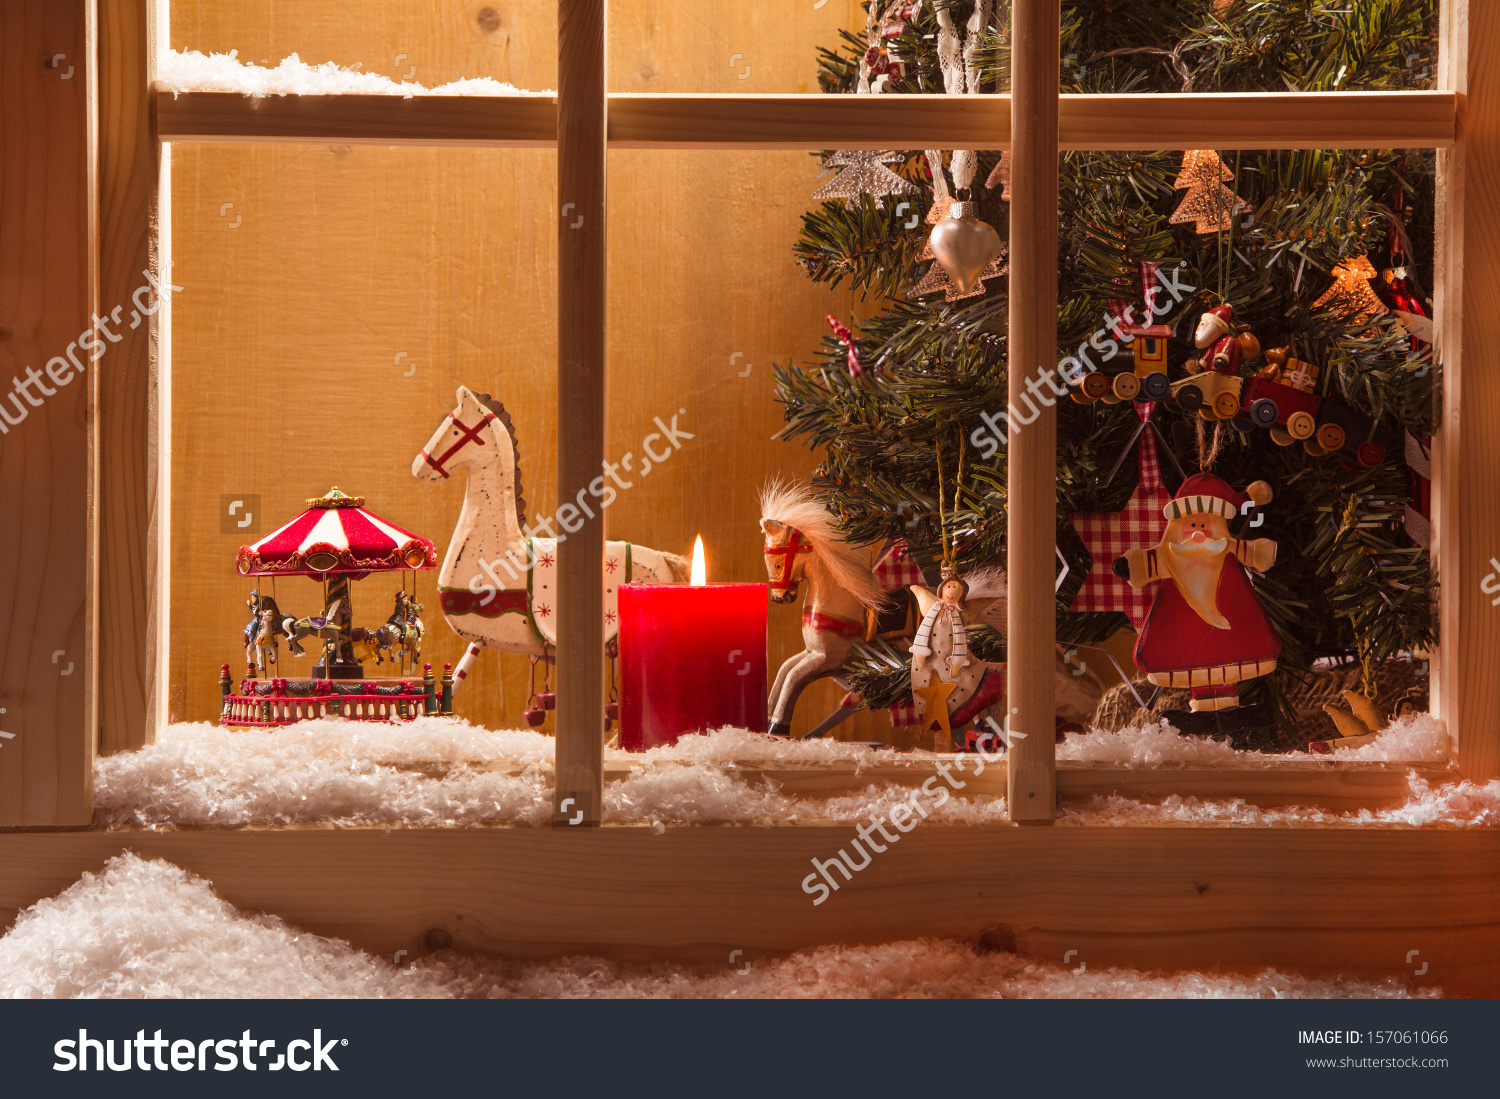 Atmospheric Christmas Window Sill Decorationsnowtreecandlerocking.